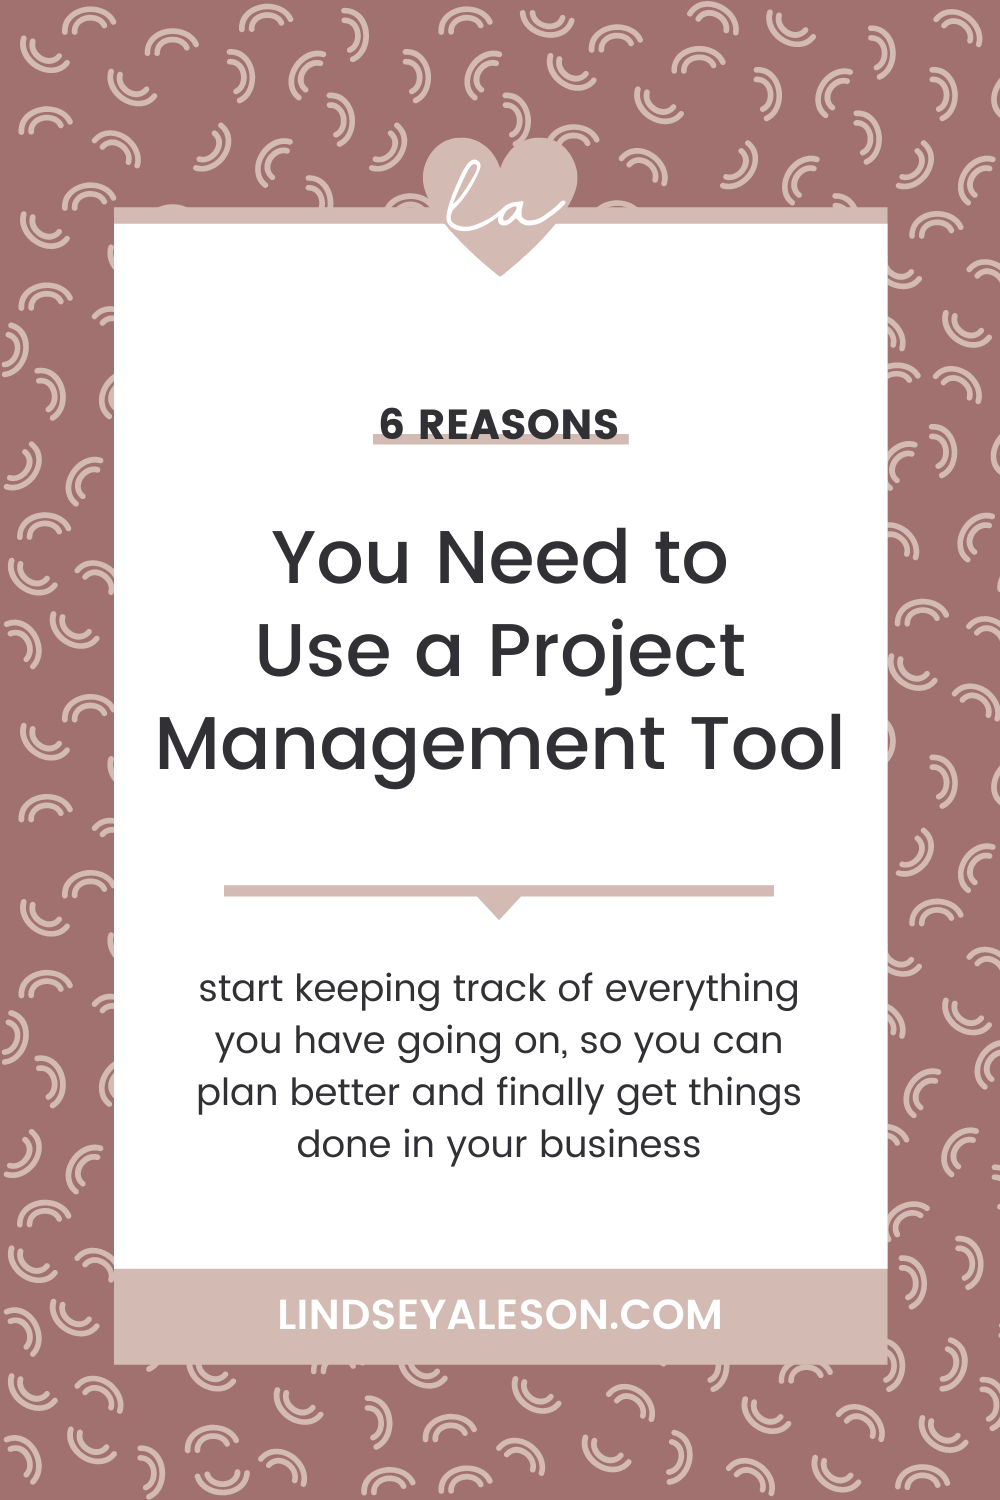 6 Reasons You Need to Use a Project Management Tool